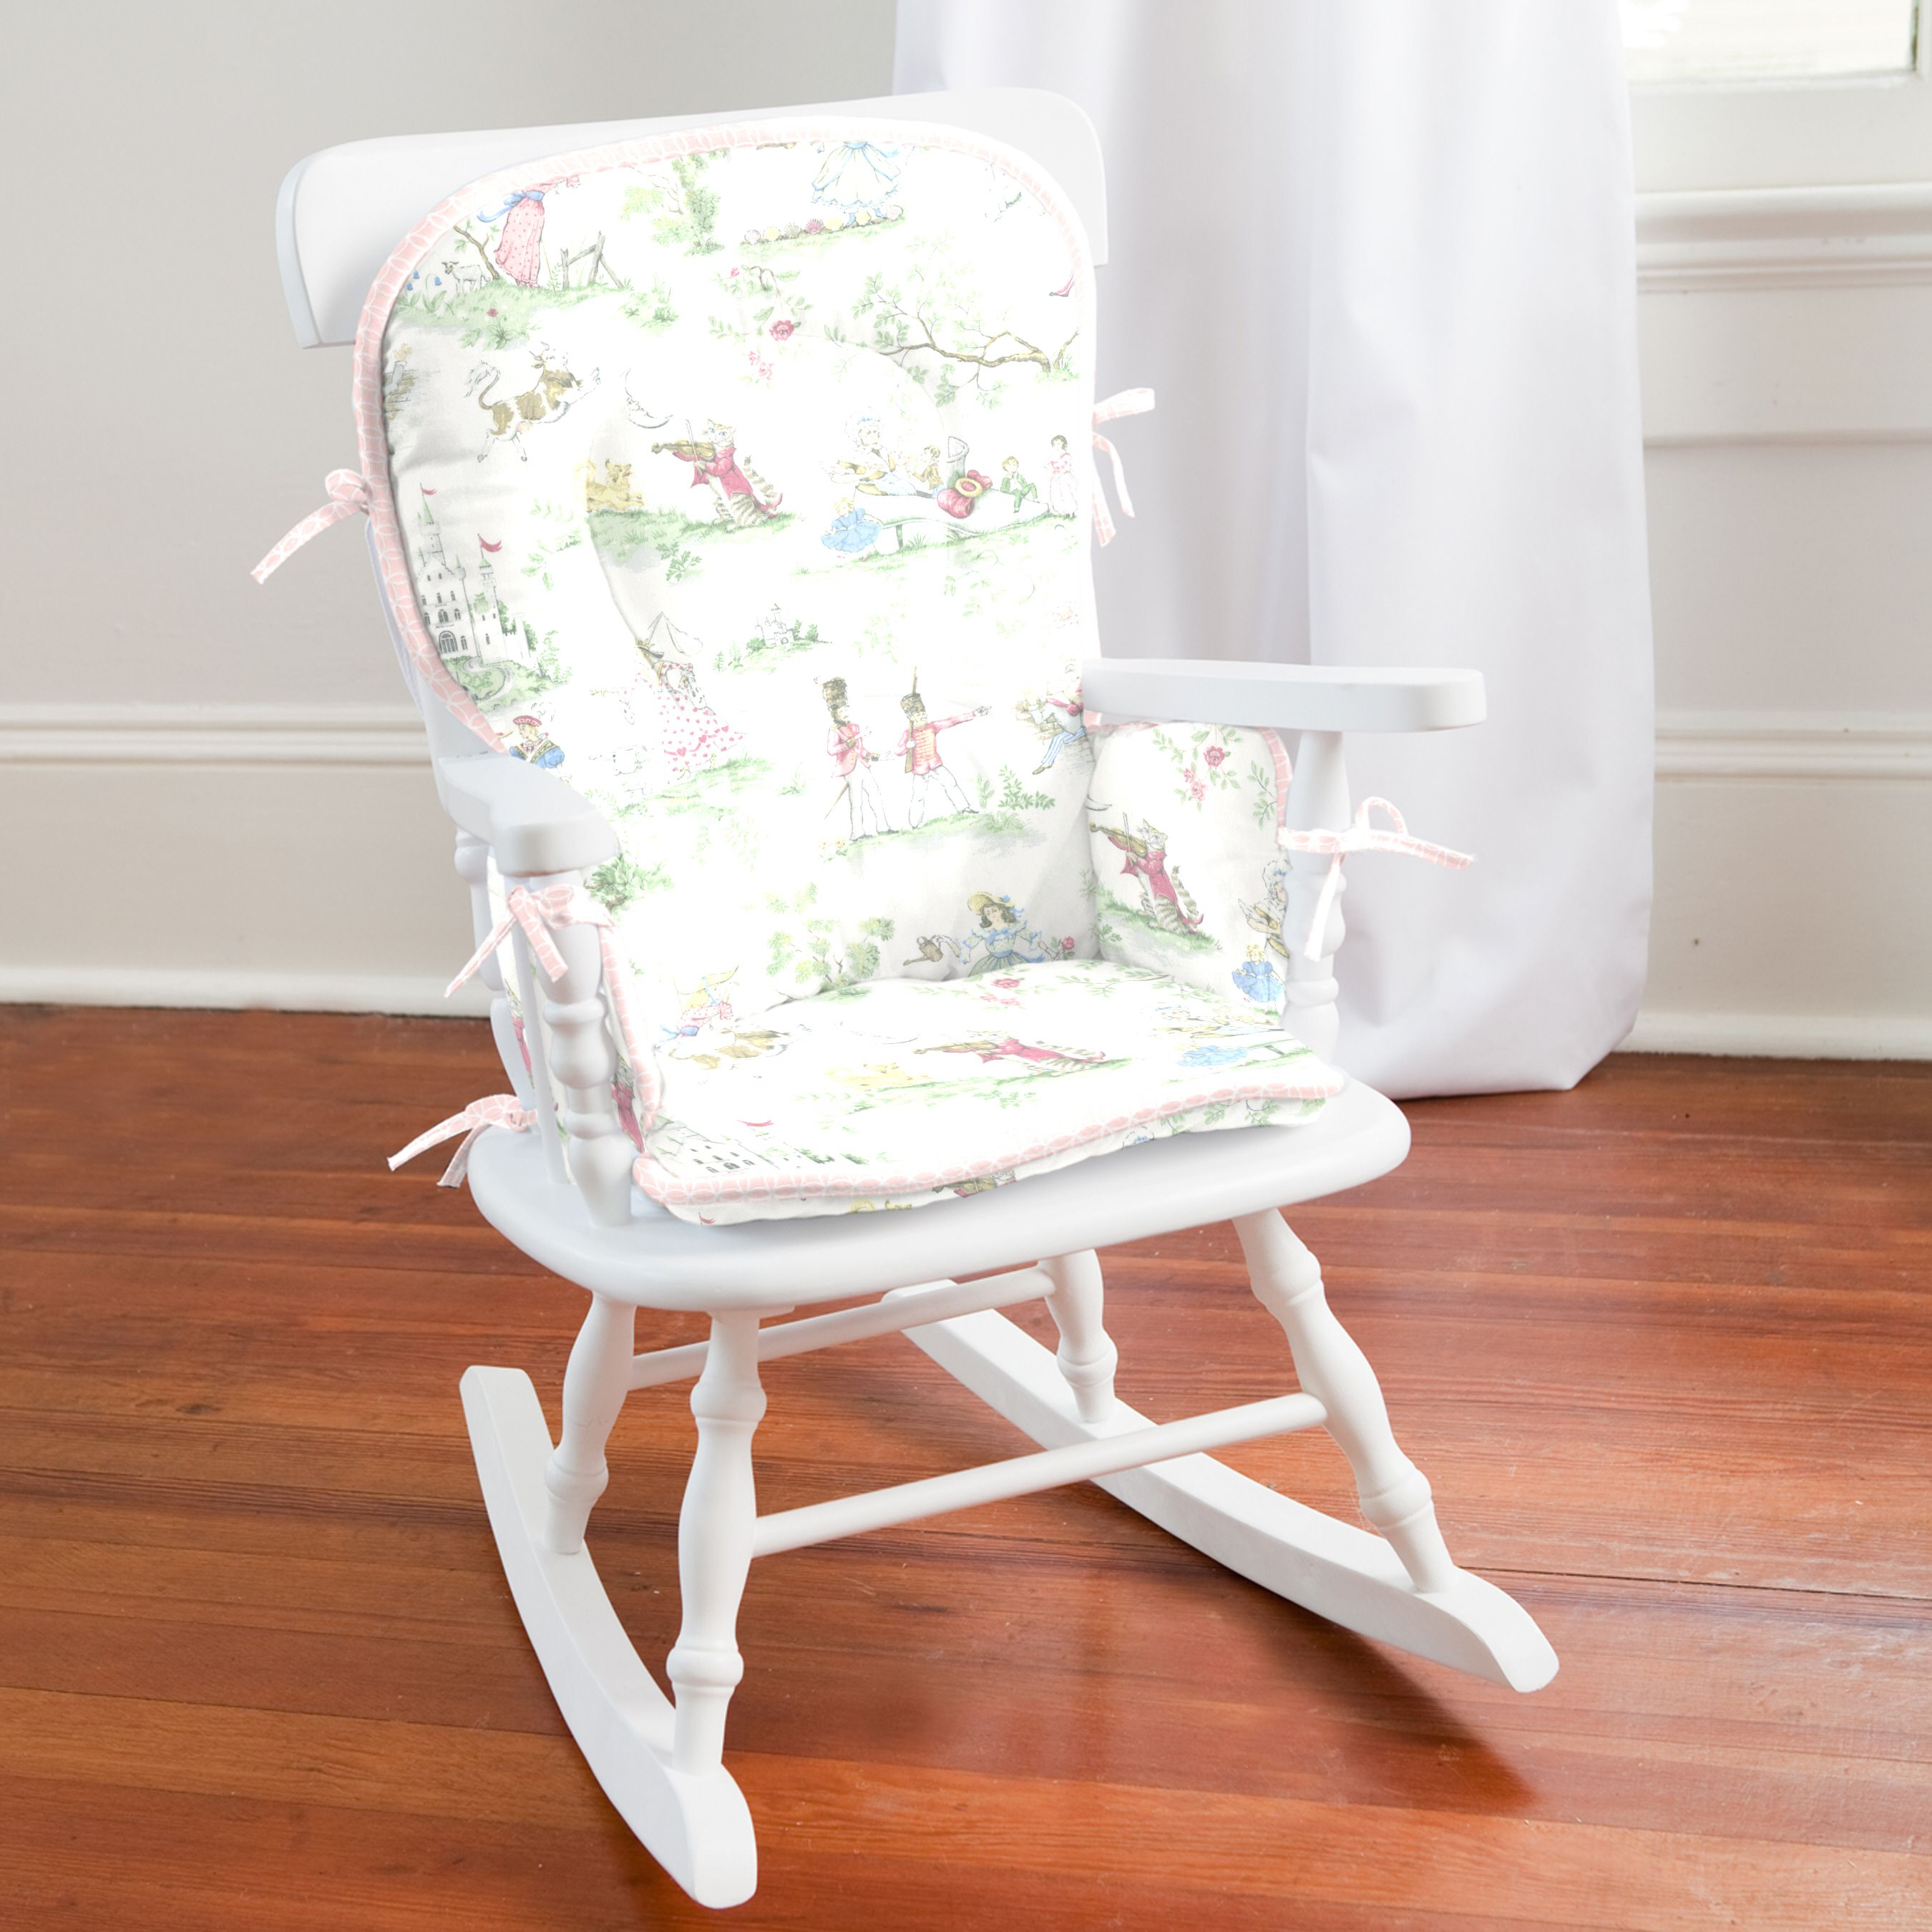 Pink Over the Moon Toile High Chair Pad Rocking chair